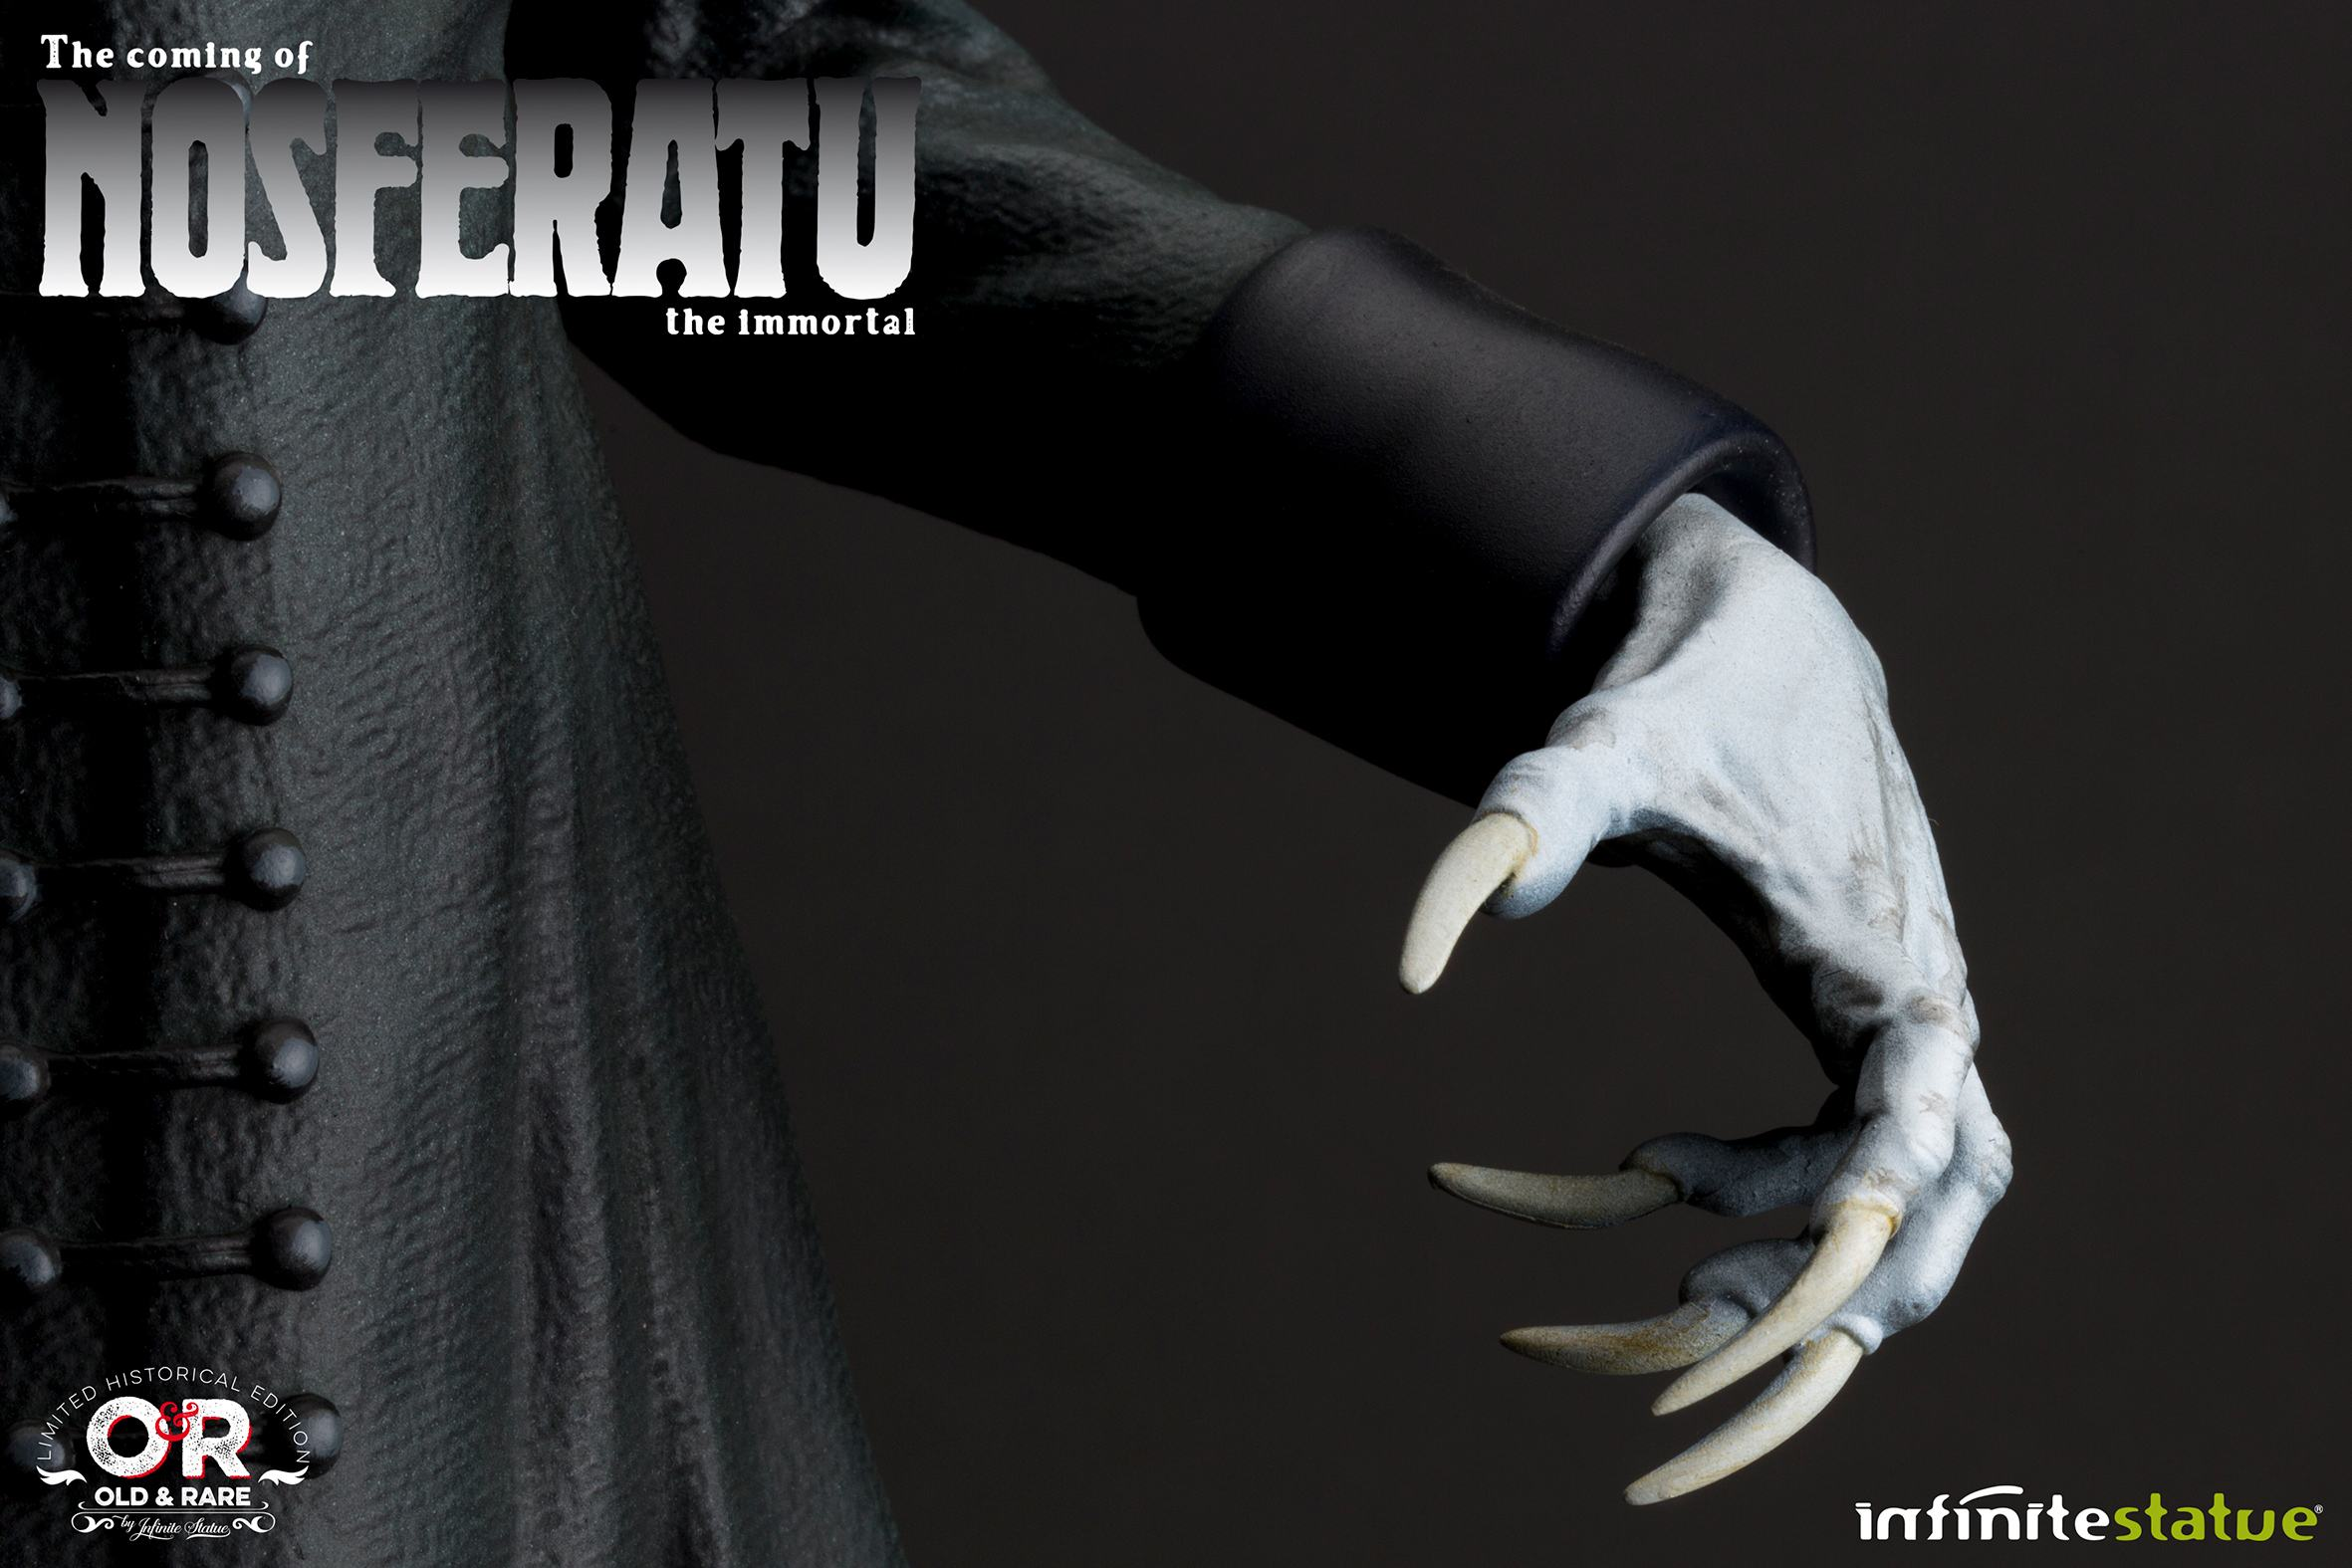 estatua-the-coming-of-nosferatu-statue-10